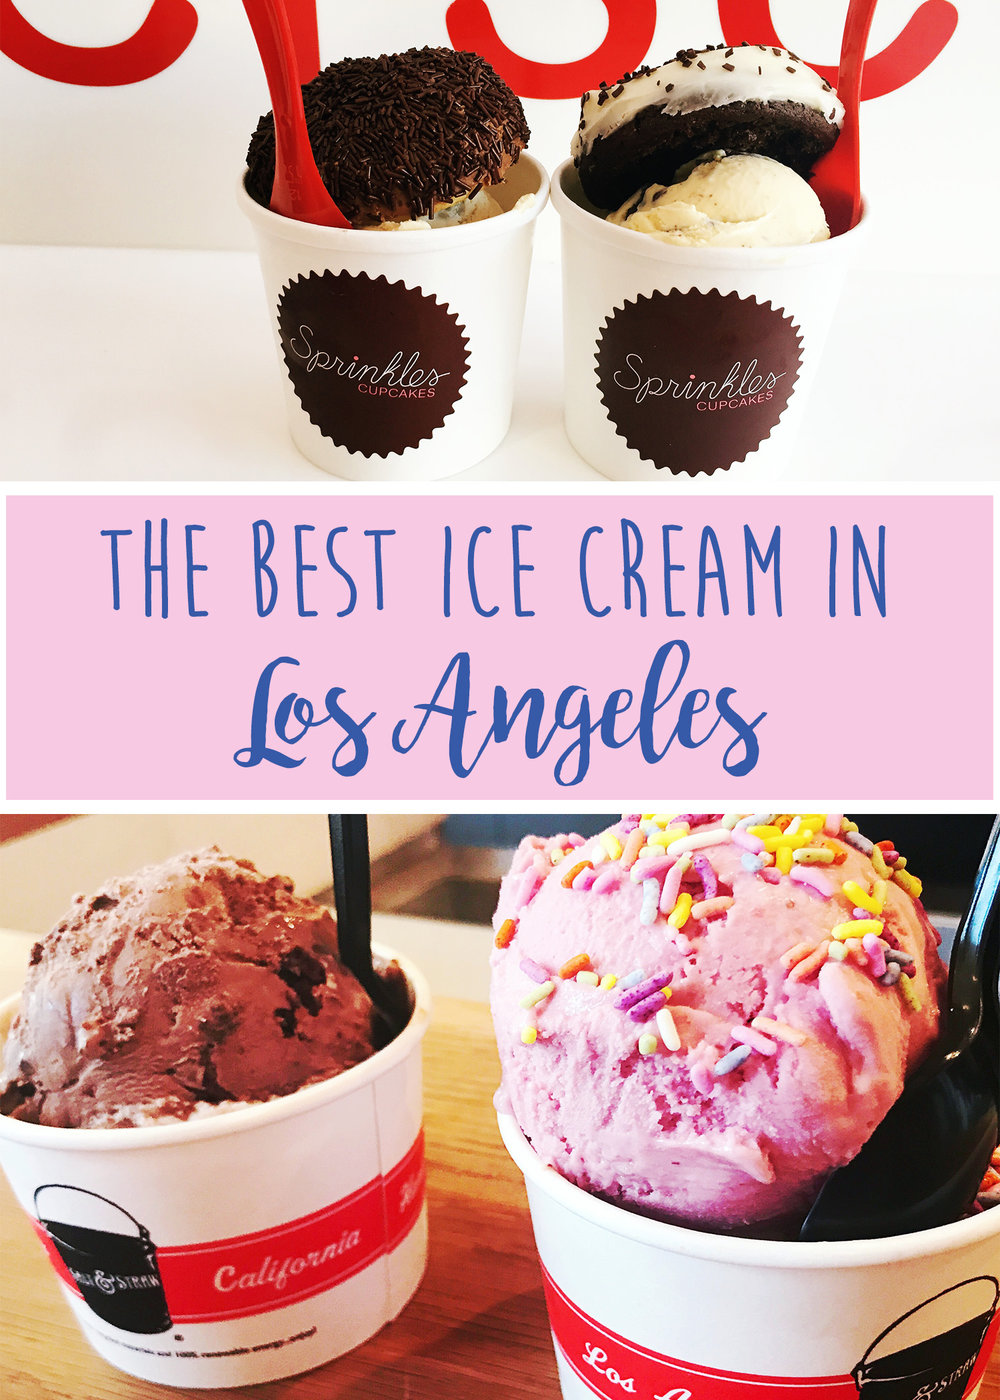 The Best Ice Cream in Los Angeles